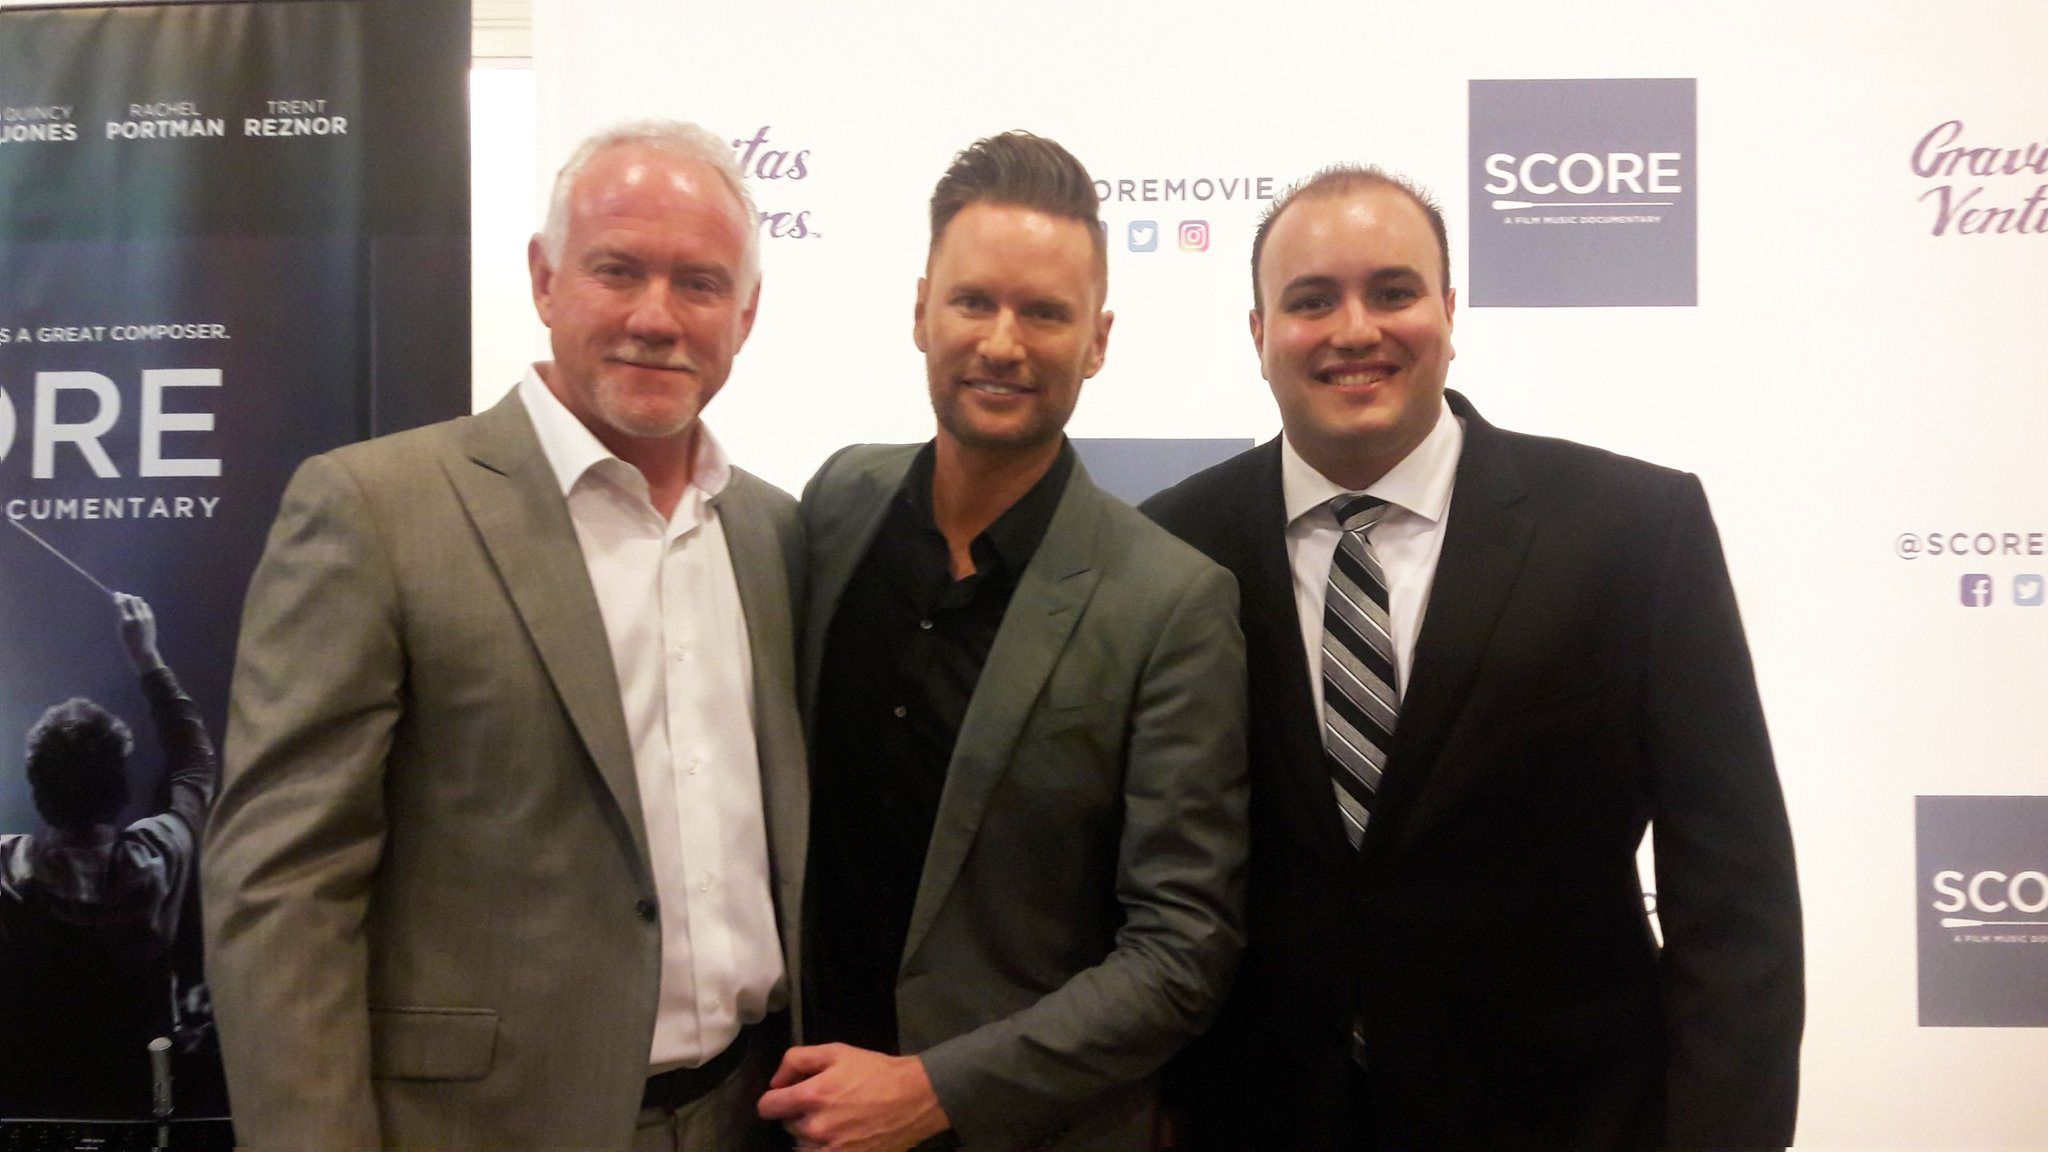 At the screening of SCORE, a documentary on film music with composers John Debney and Brian Tyler in Santa Monica